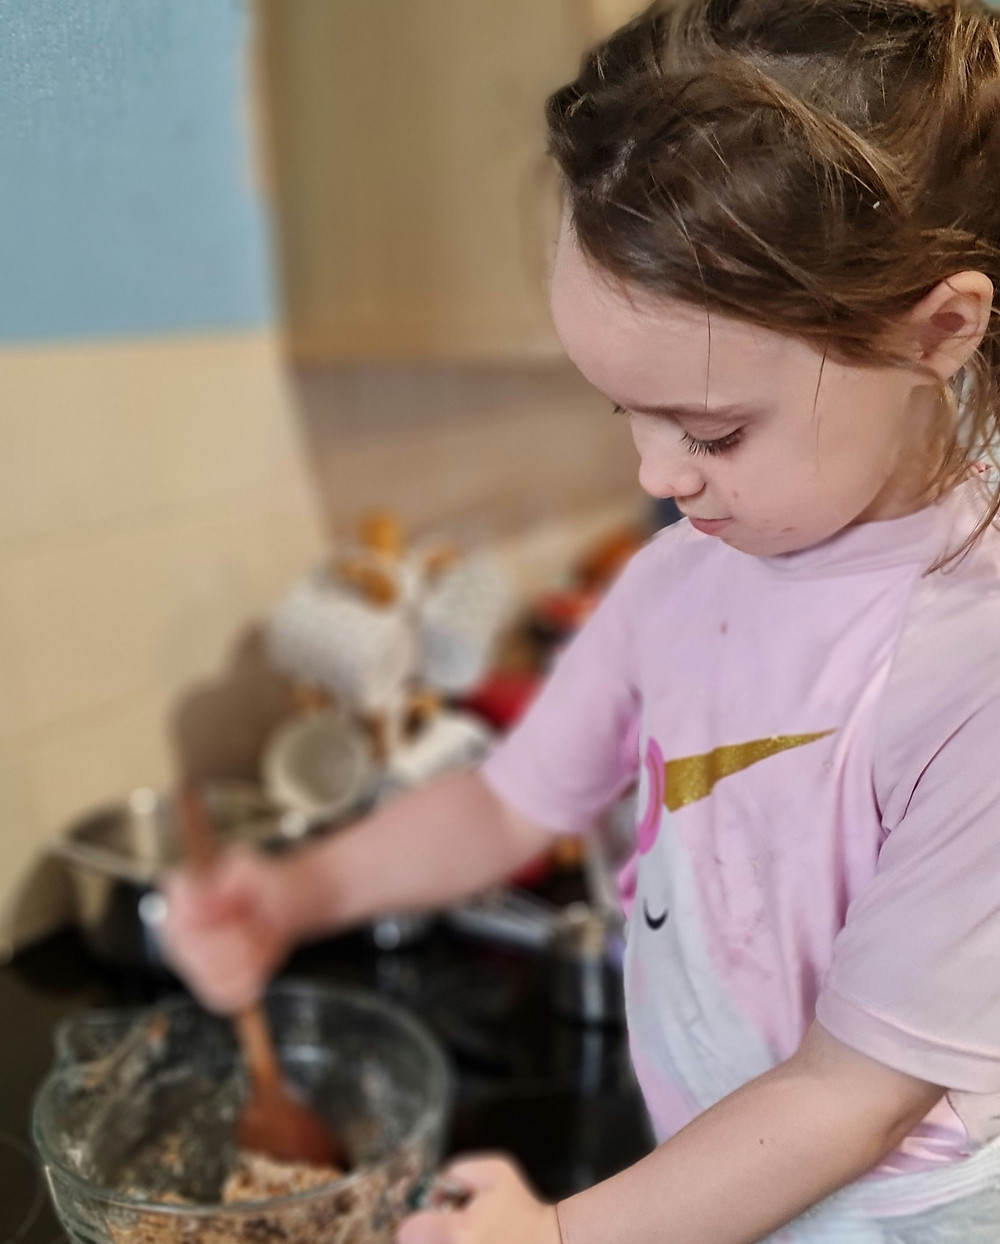 Little girl standing at the cooker stirring a mixing bowl of ingredients